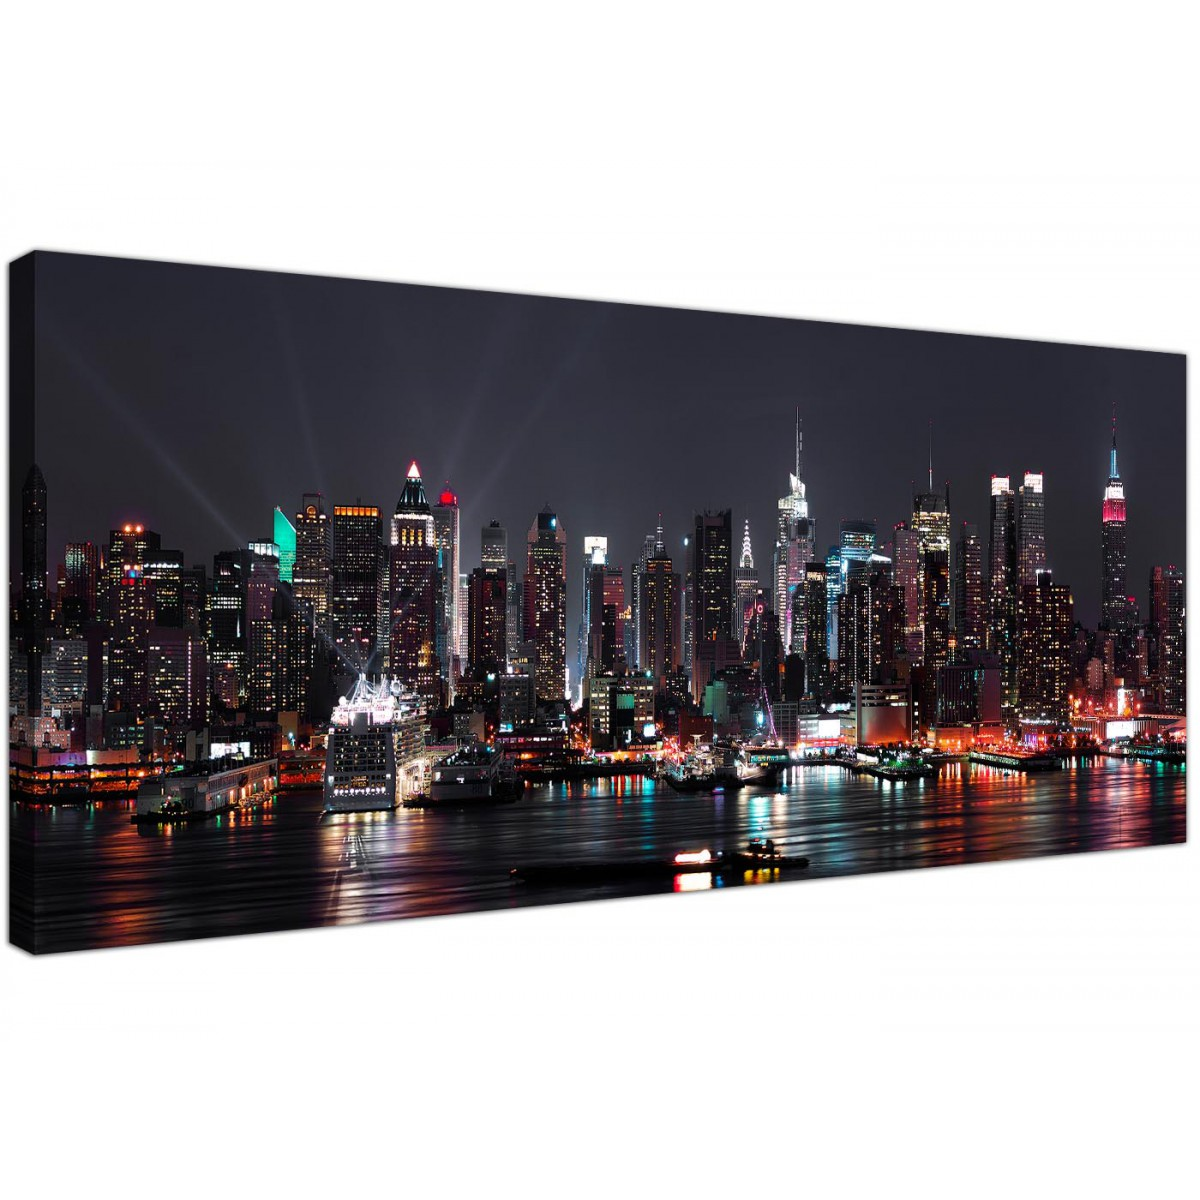 Designart New York City Skyline Panorama 5 Piece Wall: Cheap Canvas Prints Of The New York Skyline For Your Office